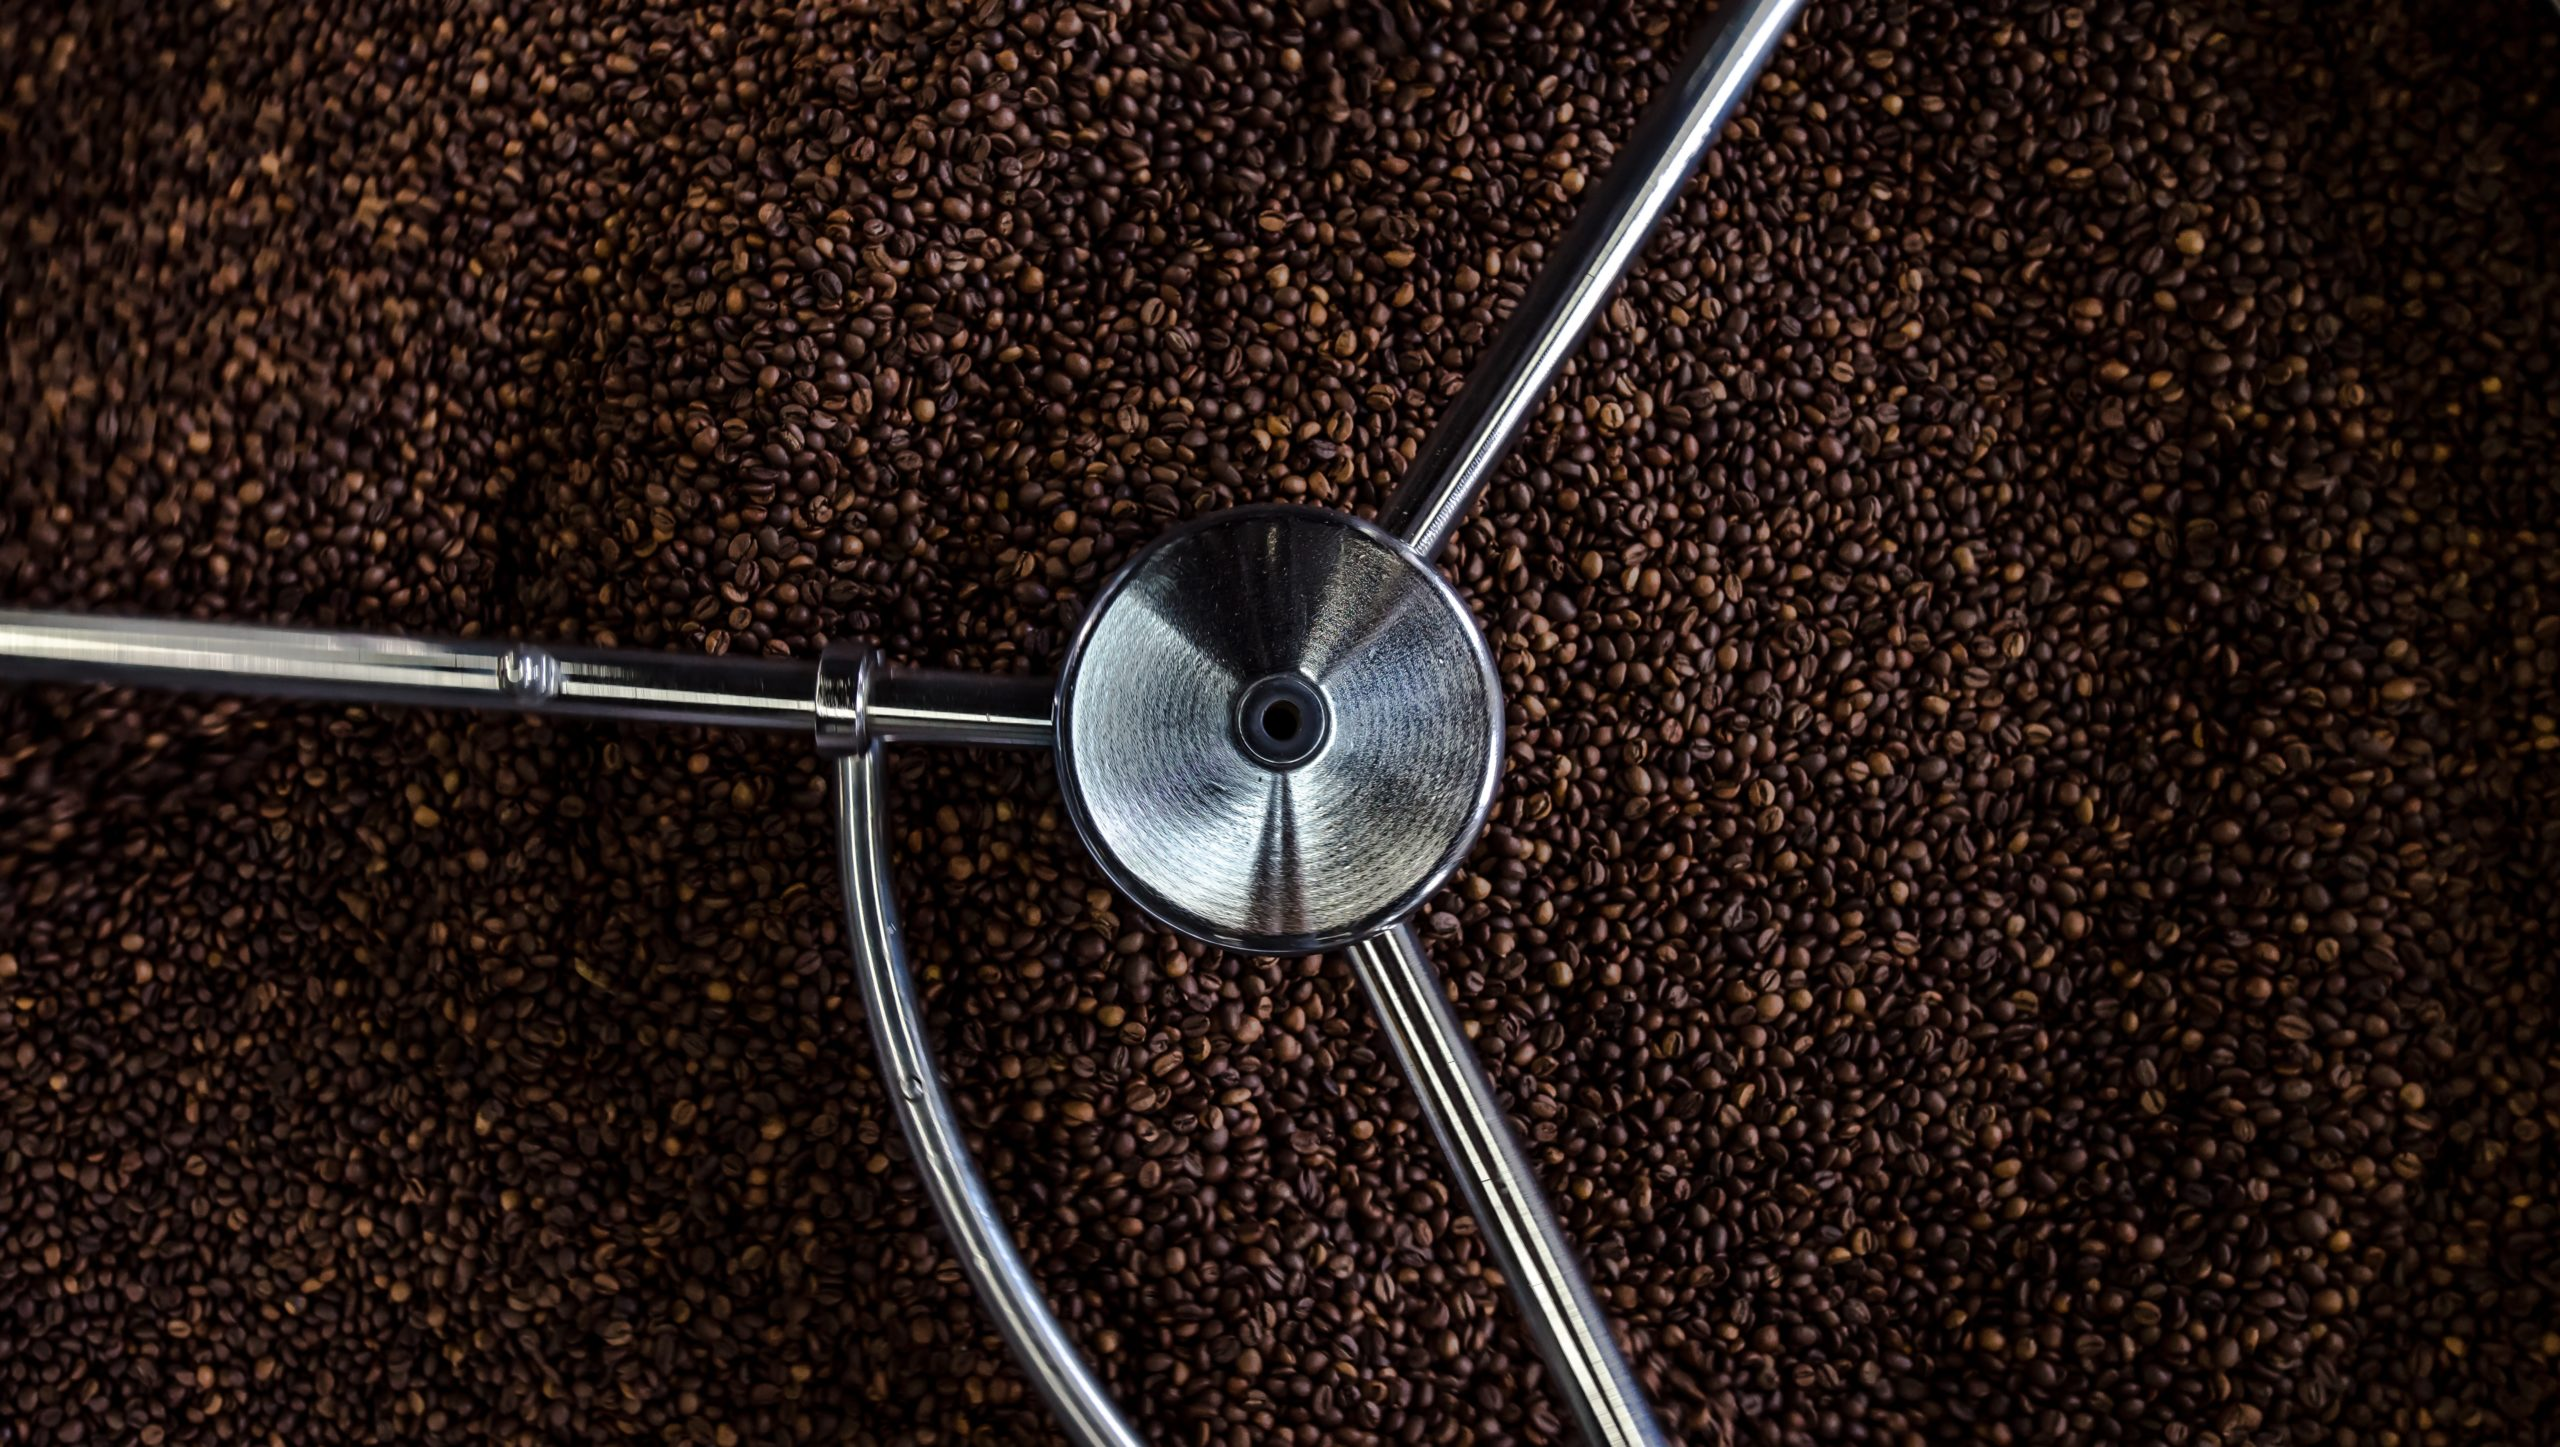 an aerial view of coffee beans being roasted